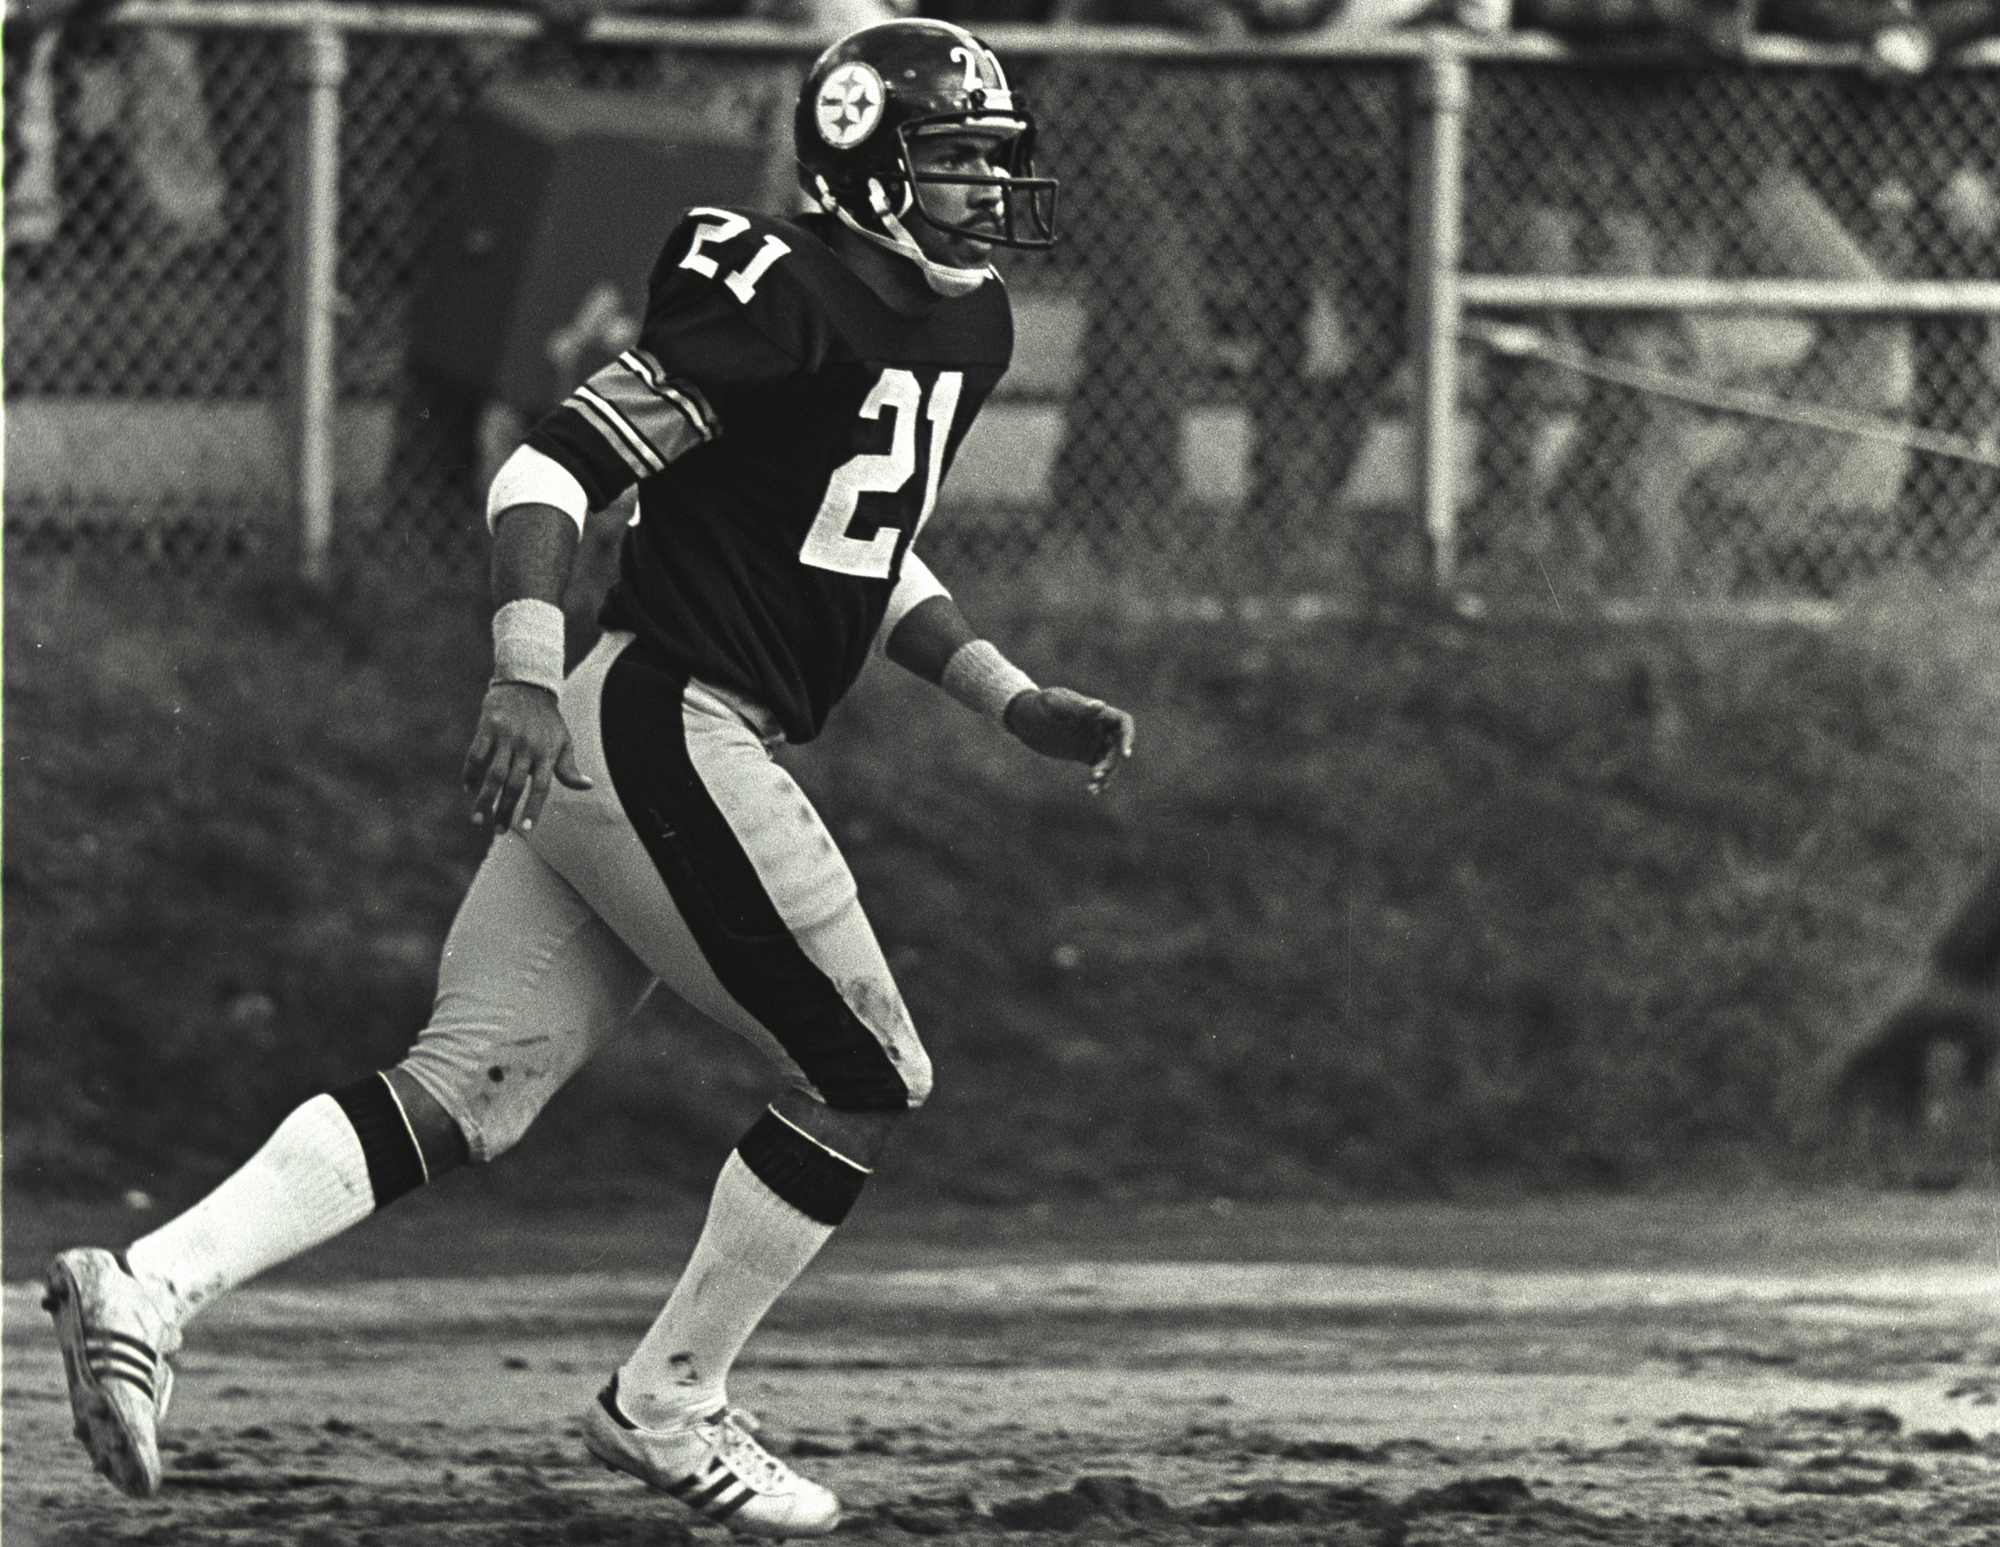 Defensive back Tony Dungy #21 of the Pittsburgh Steelers in action against the Cleveland Browns at Municipal Stadium on October 15, 1978 in Cleveland, Ohio.